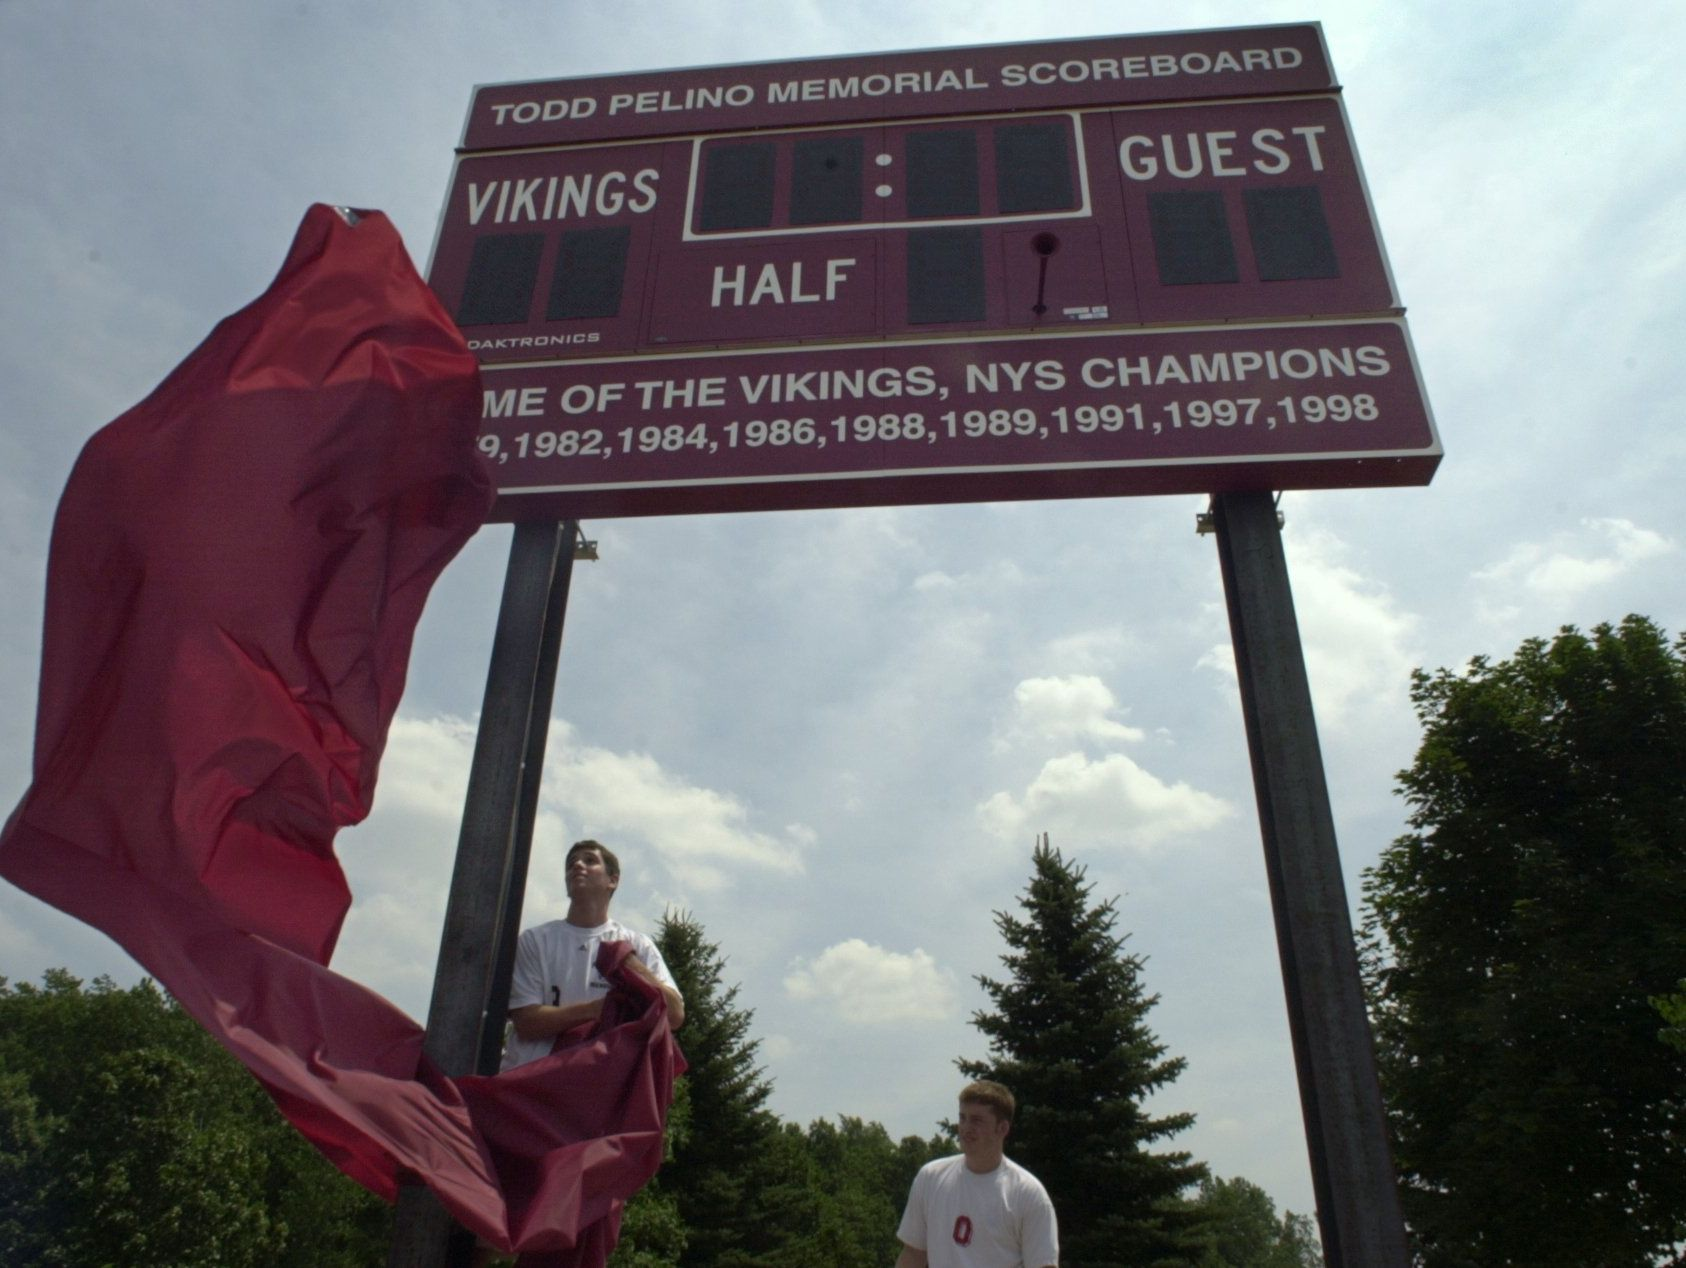 Then-players Angelo Suozzi, left, and James McKenna unveiled new scoreboard at Pittsford Mendon when it was dedicated in July 2002 in honor of Todd Pelino, a former Vikings player who was killed during the World Trade Center attacks on Sept. 11, 2001. The scoreboard at the school's new soccer field, which opened this month, also features the name of Pelino, a 1985 graduate who was 34 at the time of his death.